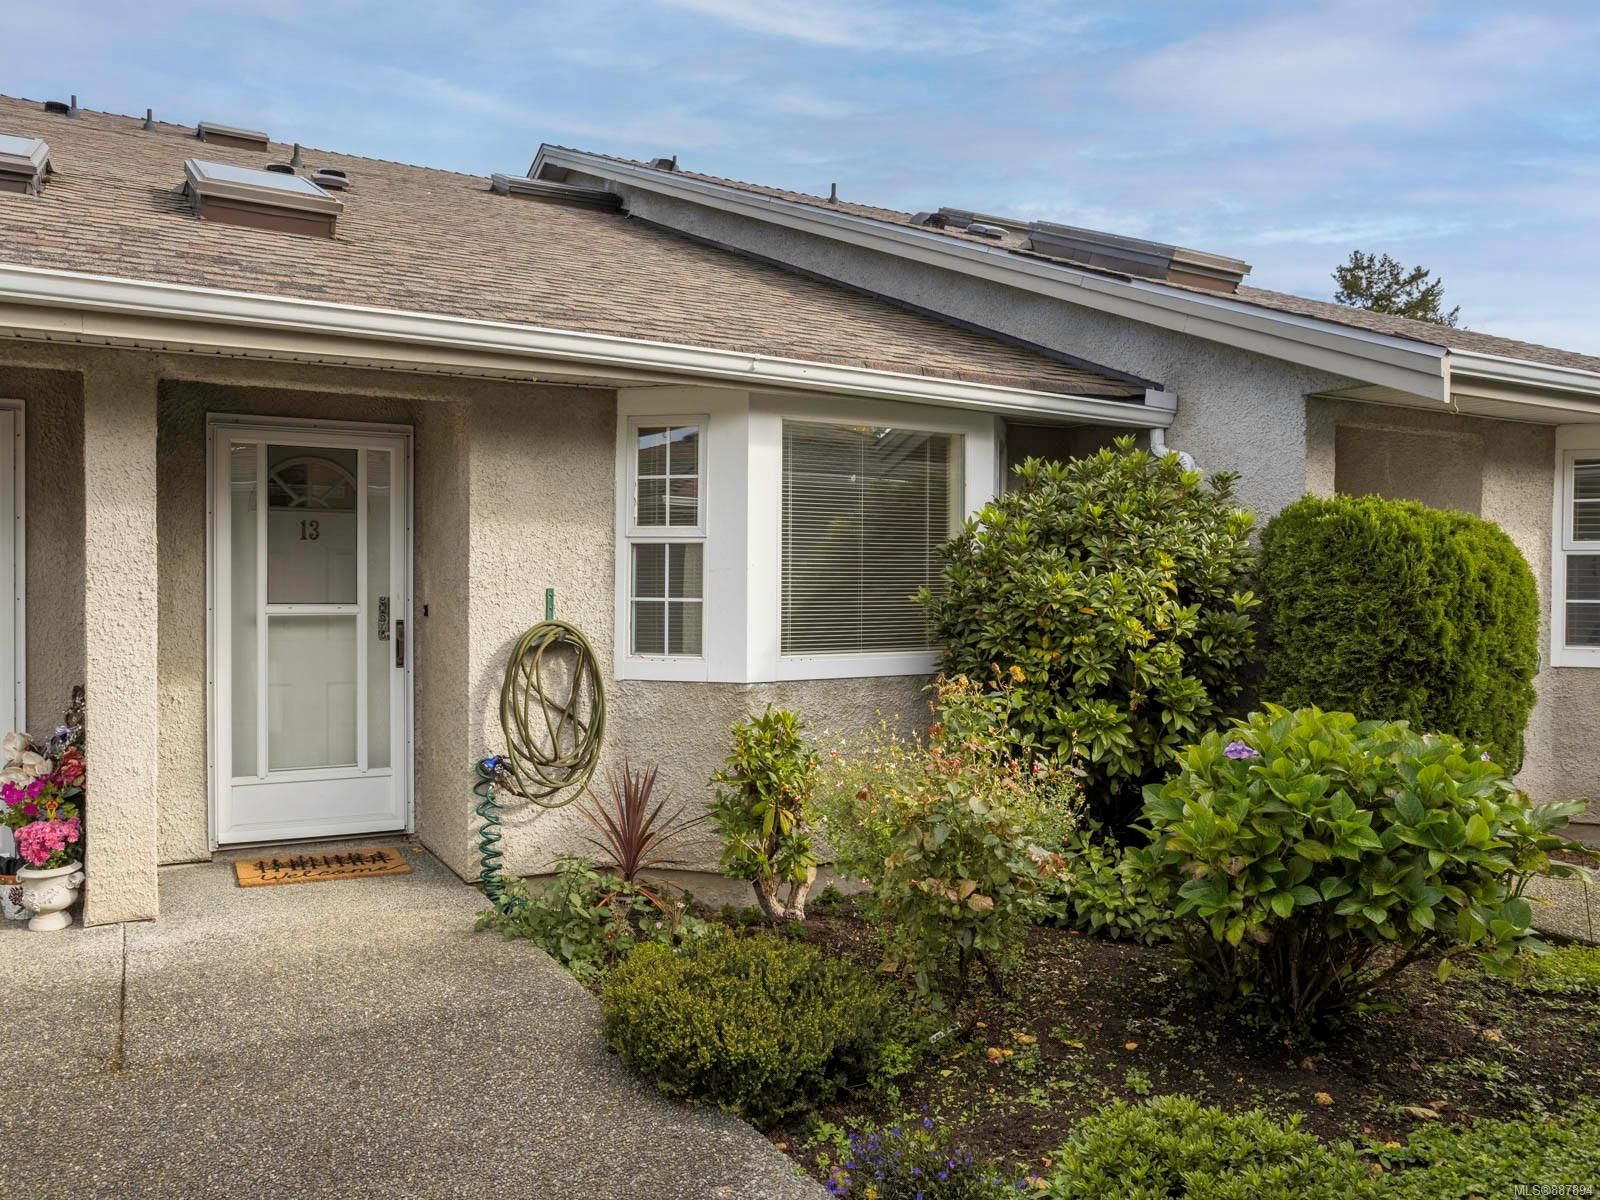 Main Photo: 13 2600 Ferguson Dr in : CS Turgoose Row/Townhouse for sale (Central Saanich)  : MLS®# 887894